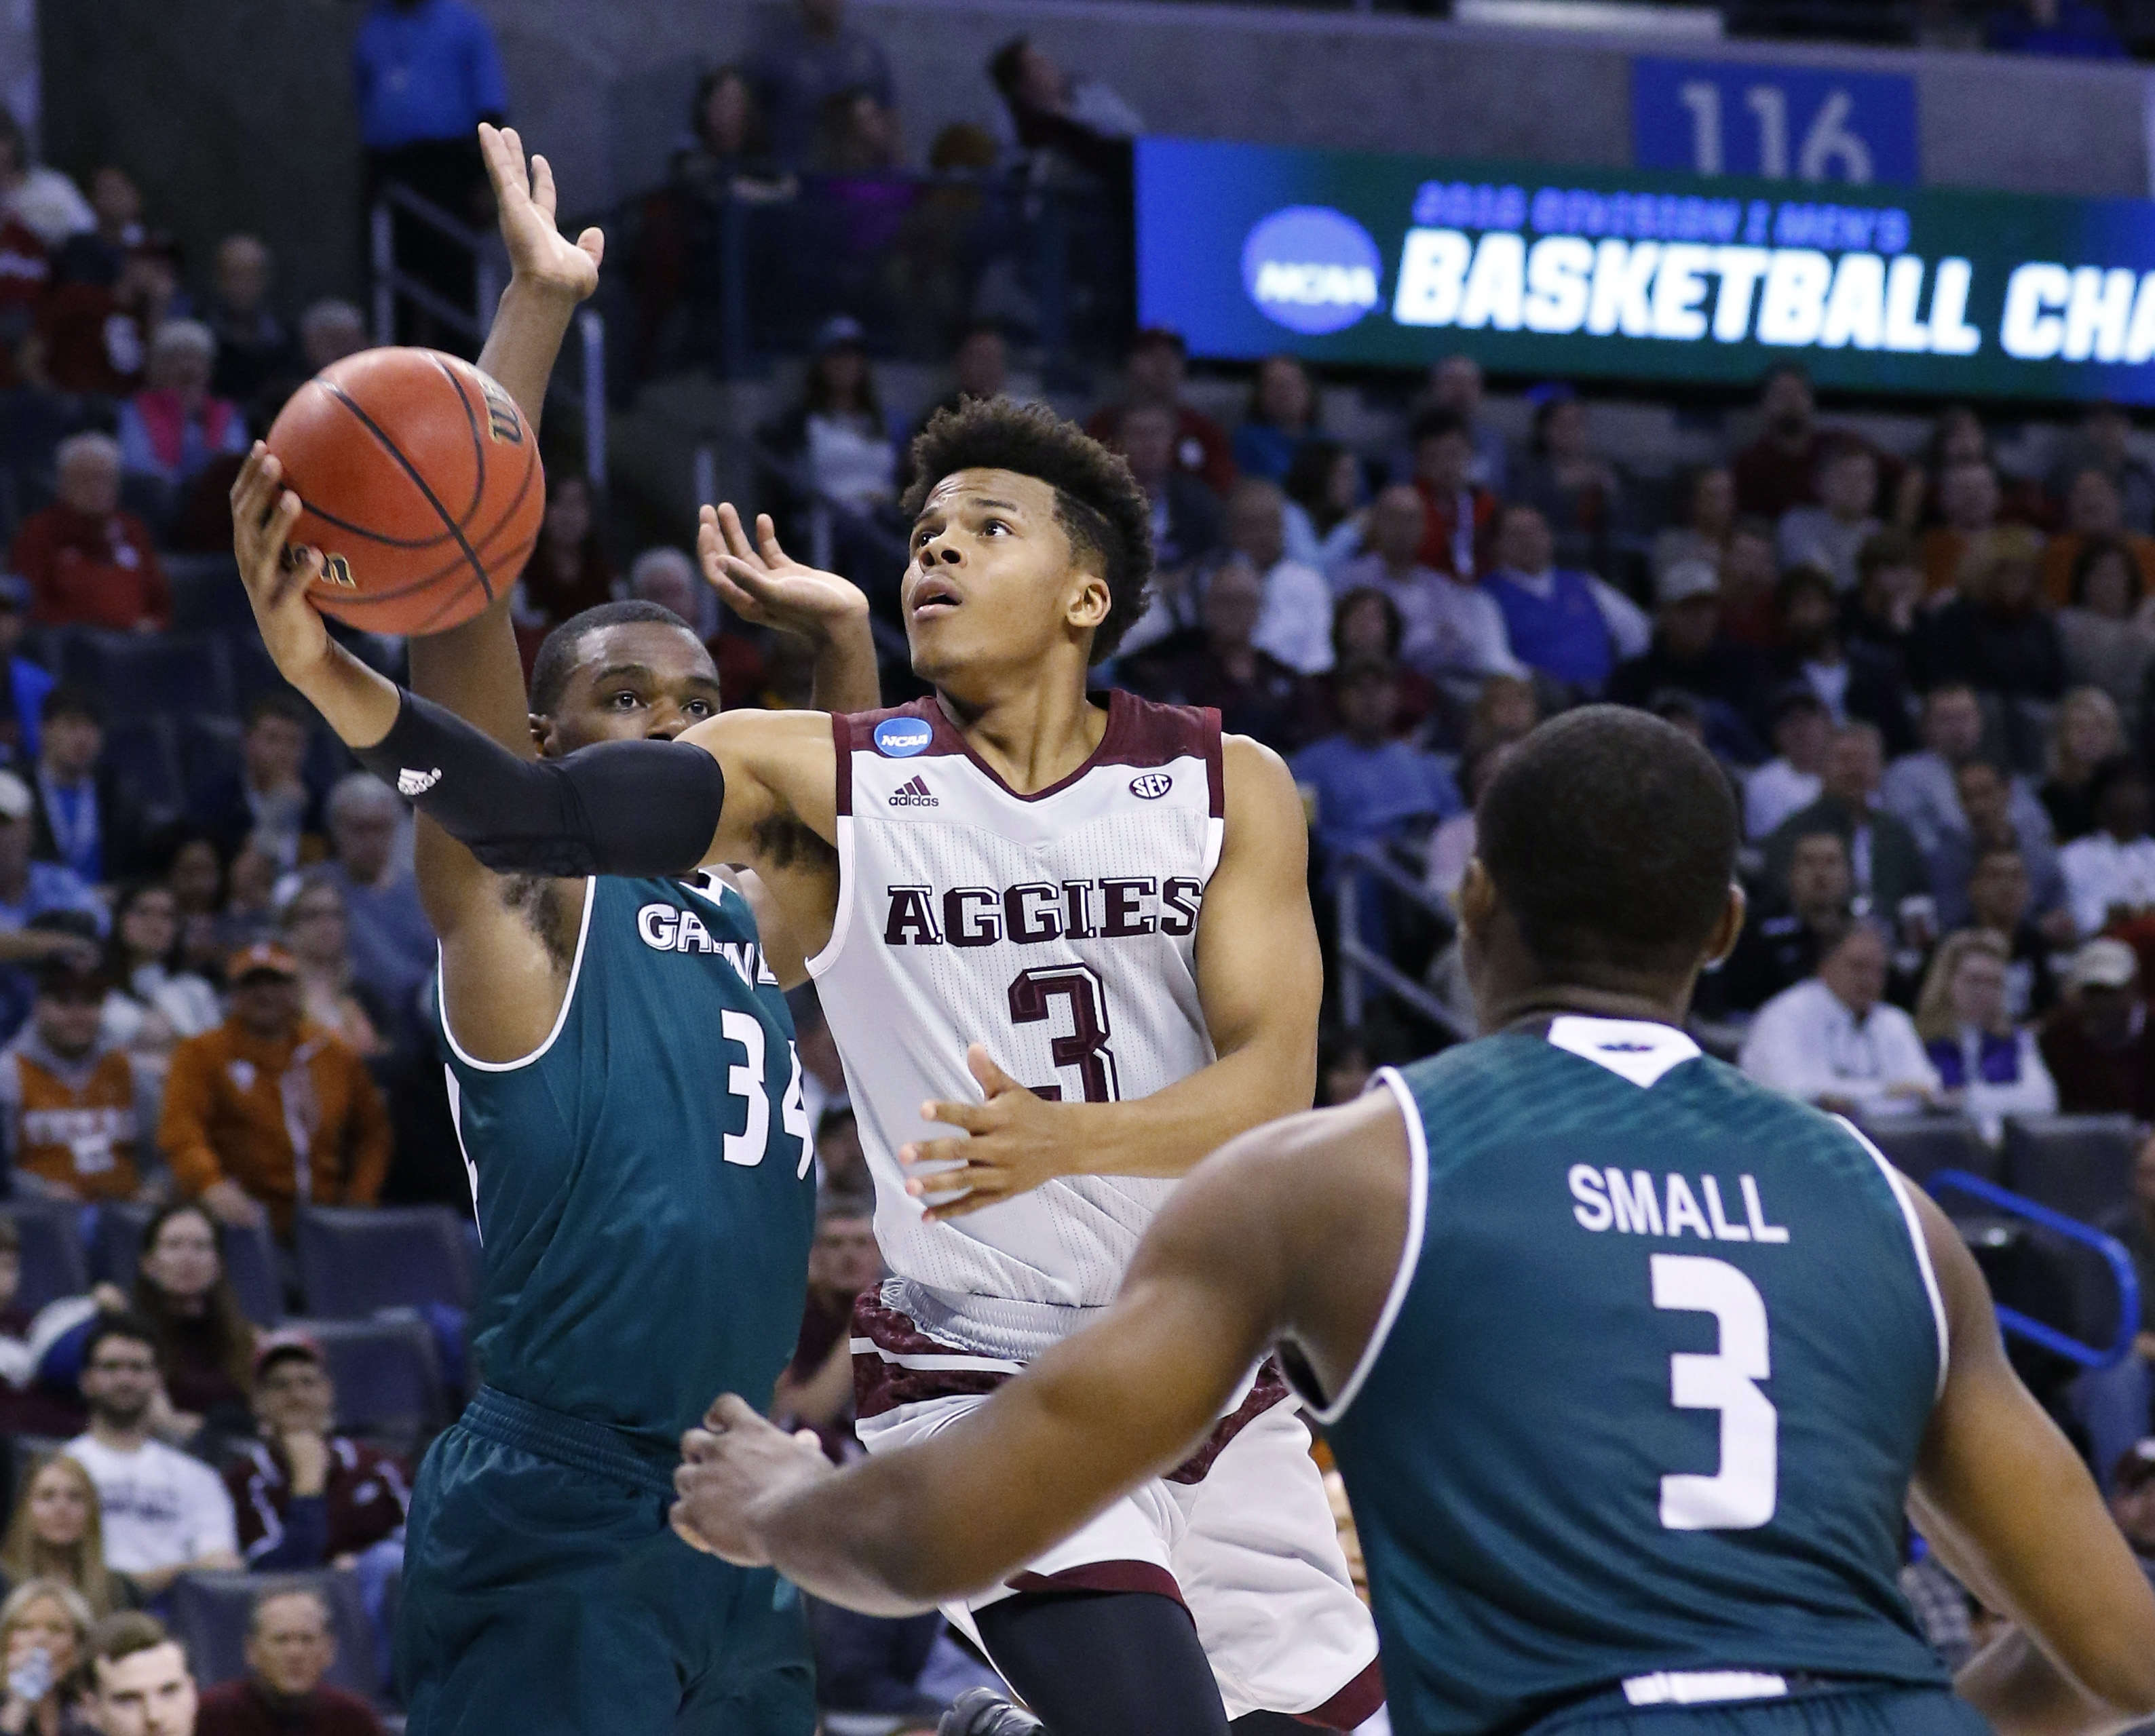 Texas A&M guard Admon Gilder (3) shoots between Green Bay guard Charles Cooper (34) and guard Khalil Small (3) in the second half of a first-round men's college basketball game in the NCAA Tournament, Friday, March 18, 2016, in Oklahoma City. Texas A&M wo